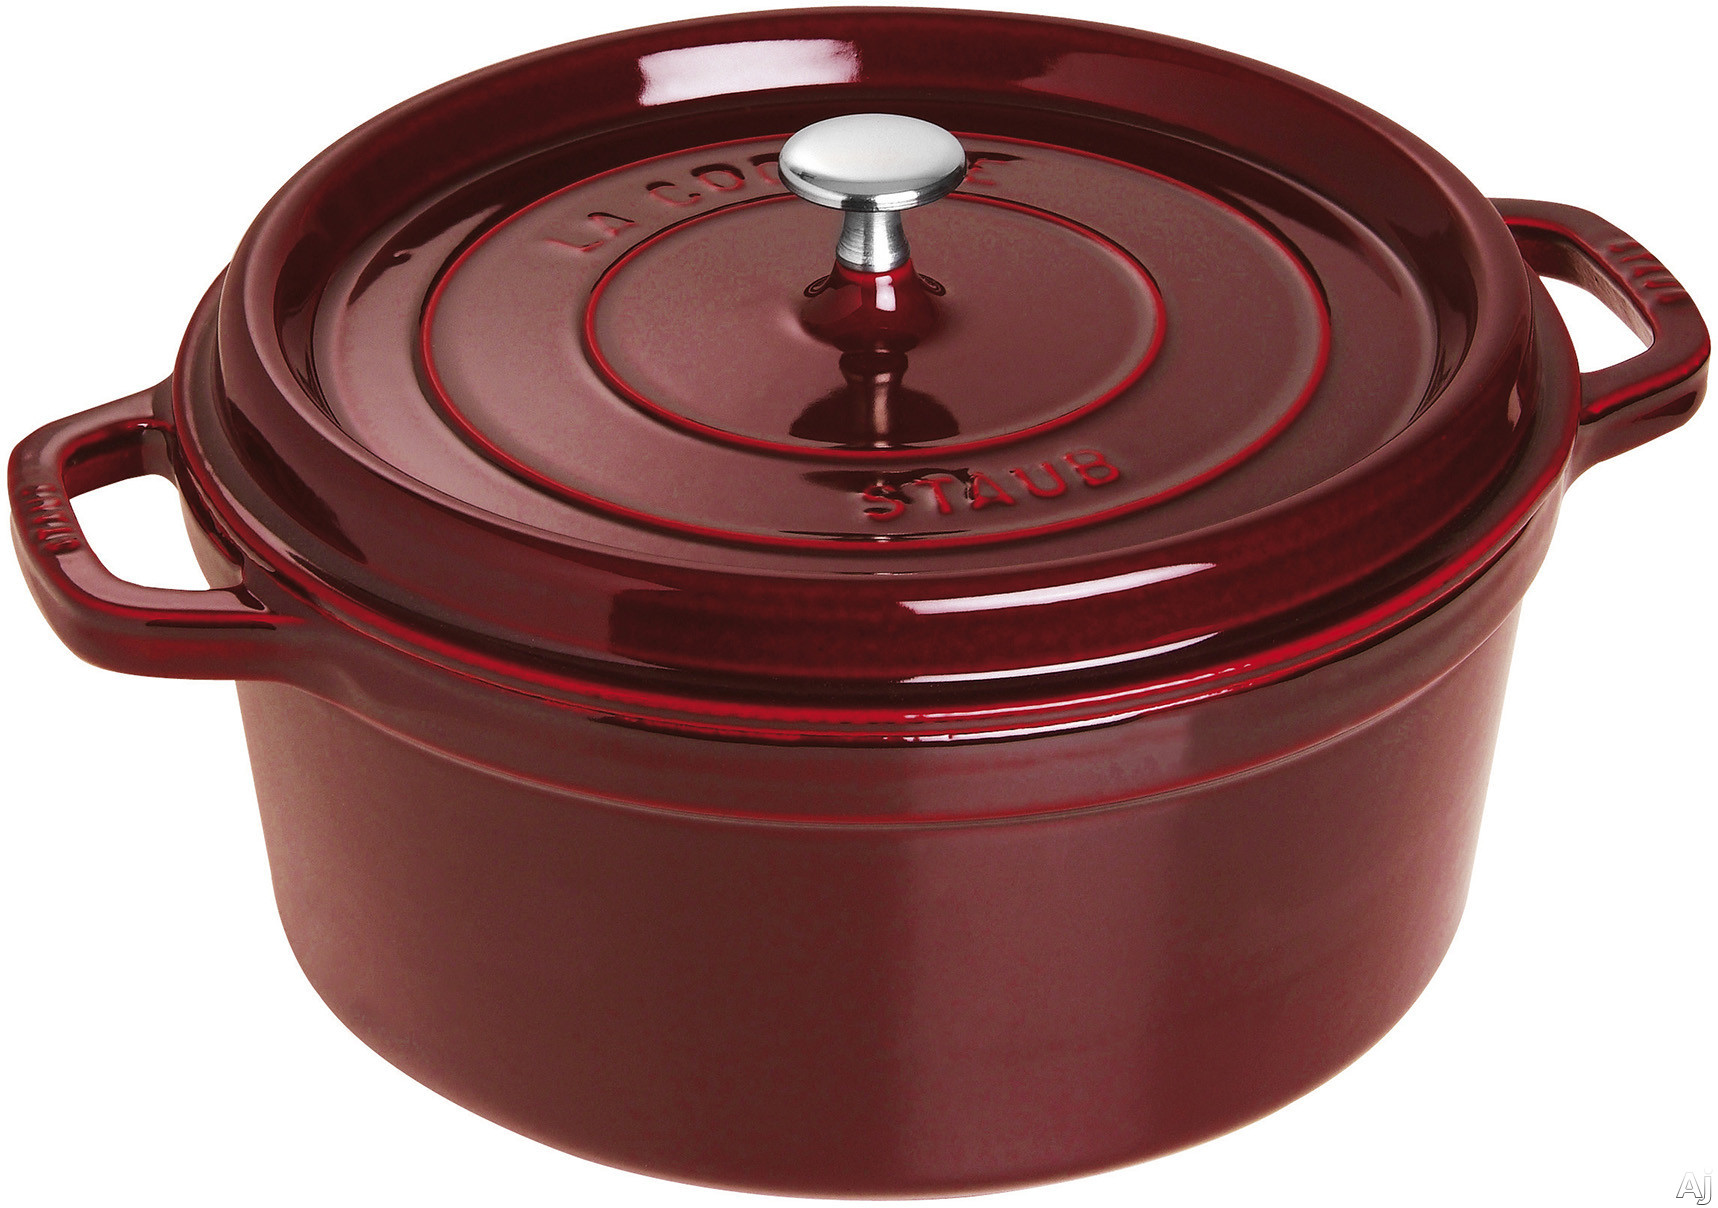 Staub 1102887 7 Quart Cast Iron Round Cocotte with Heavyweight Lid, Induction Suitable, Oven Safe, Made in France, Dishwasher Safe and Nickel Steel Knob: Grenadine